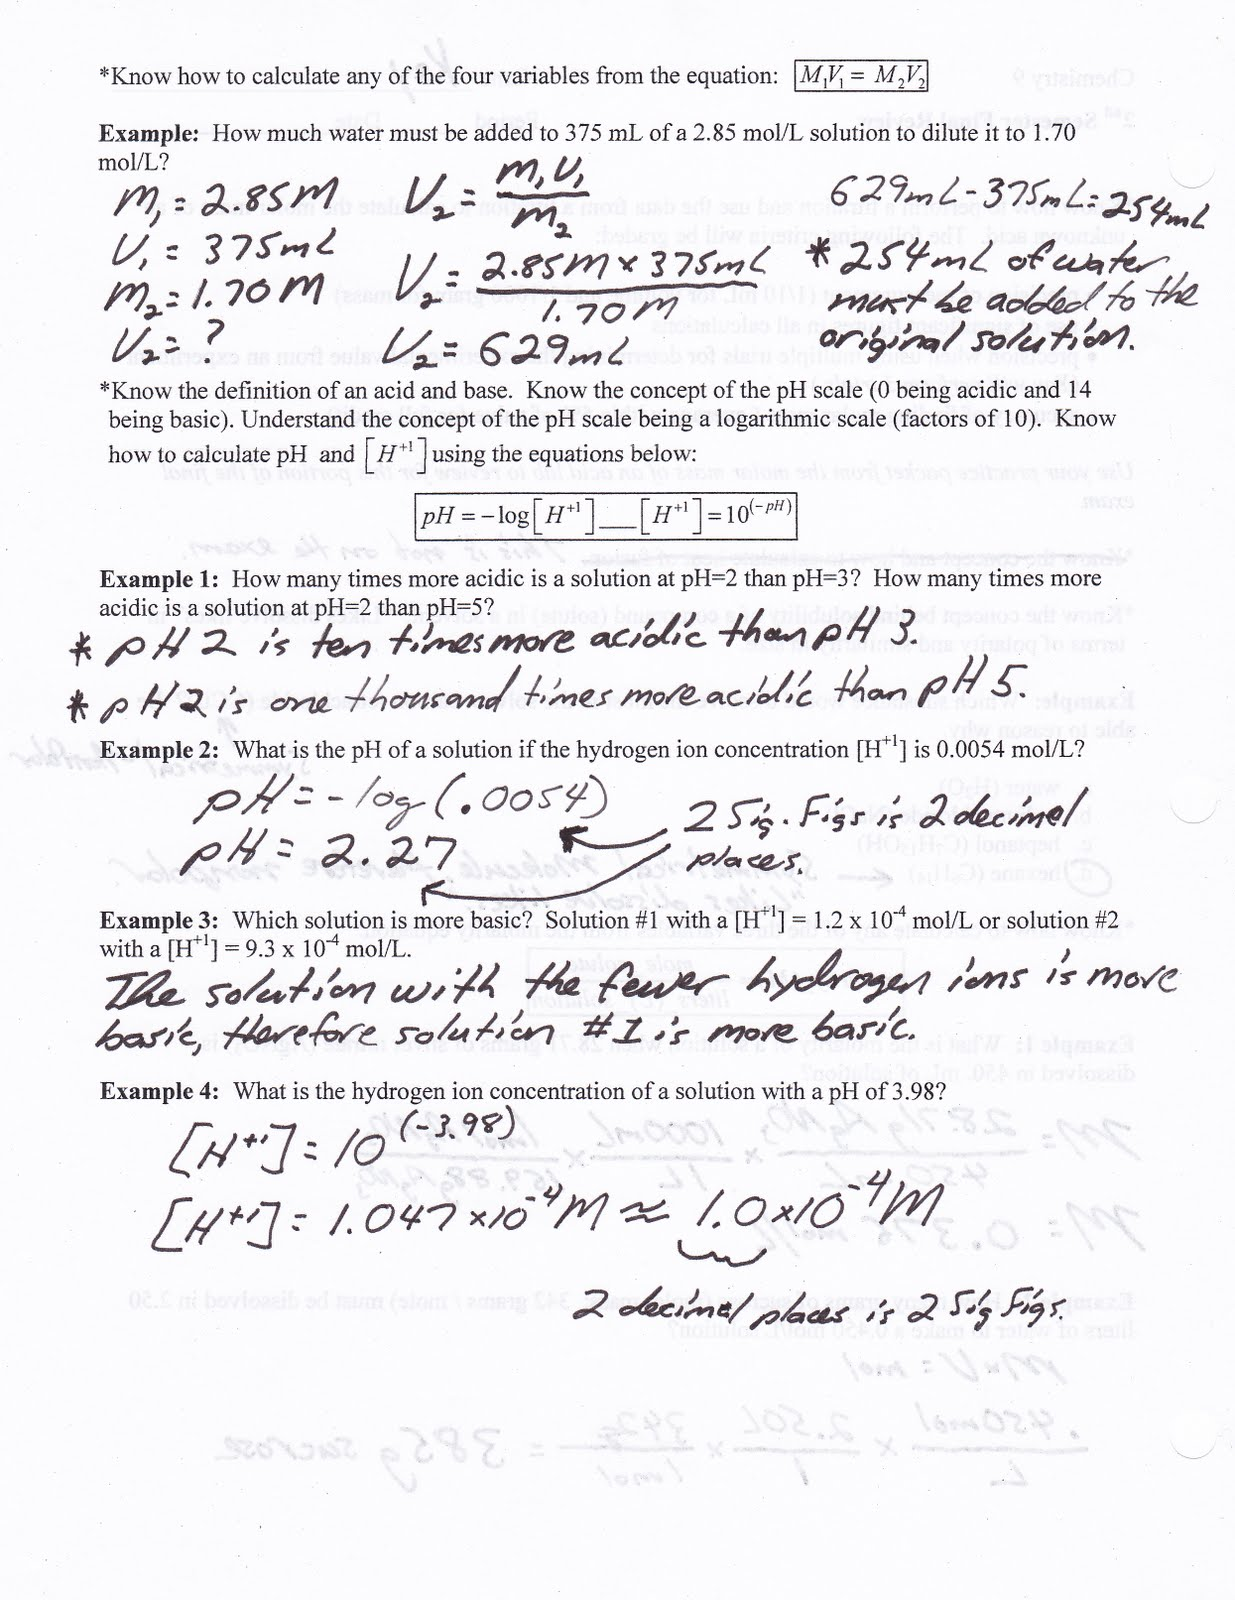 Printables Physical Science If8767 Worksheet Answers physical science if8767 worksheet answers abitlikethis answer key moreover worksheets answer